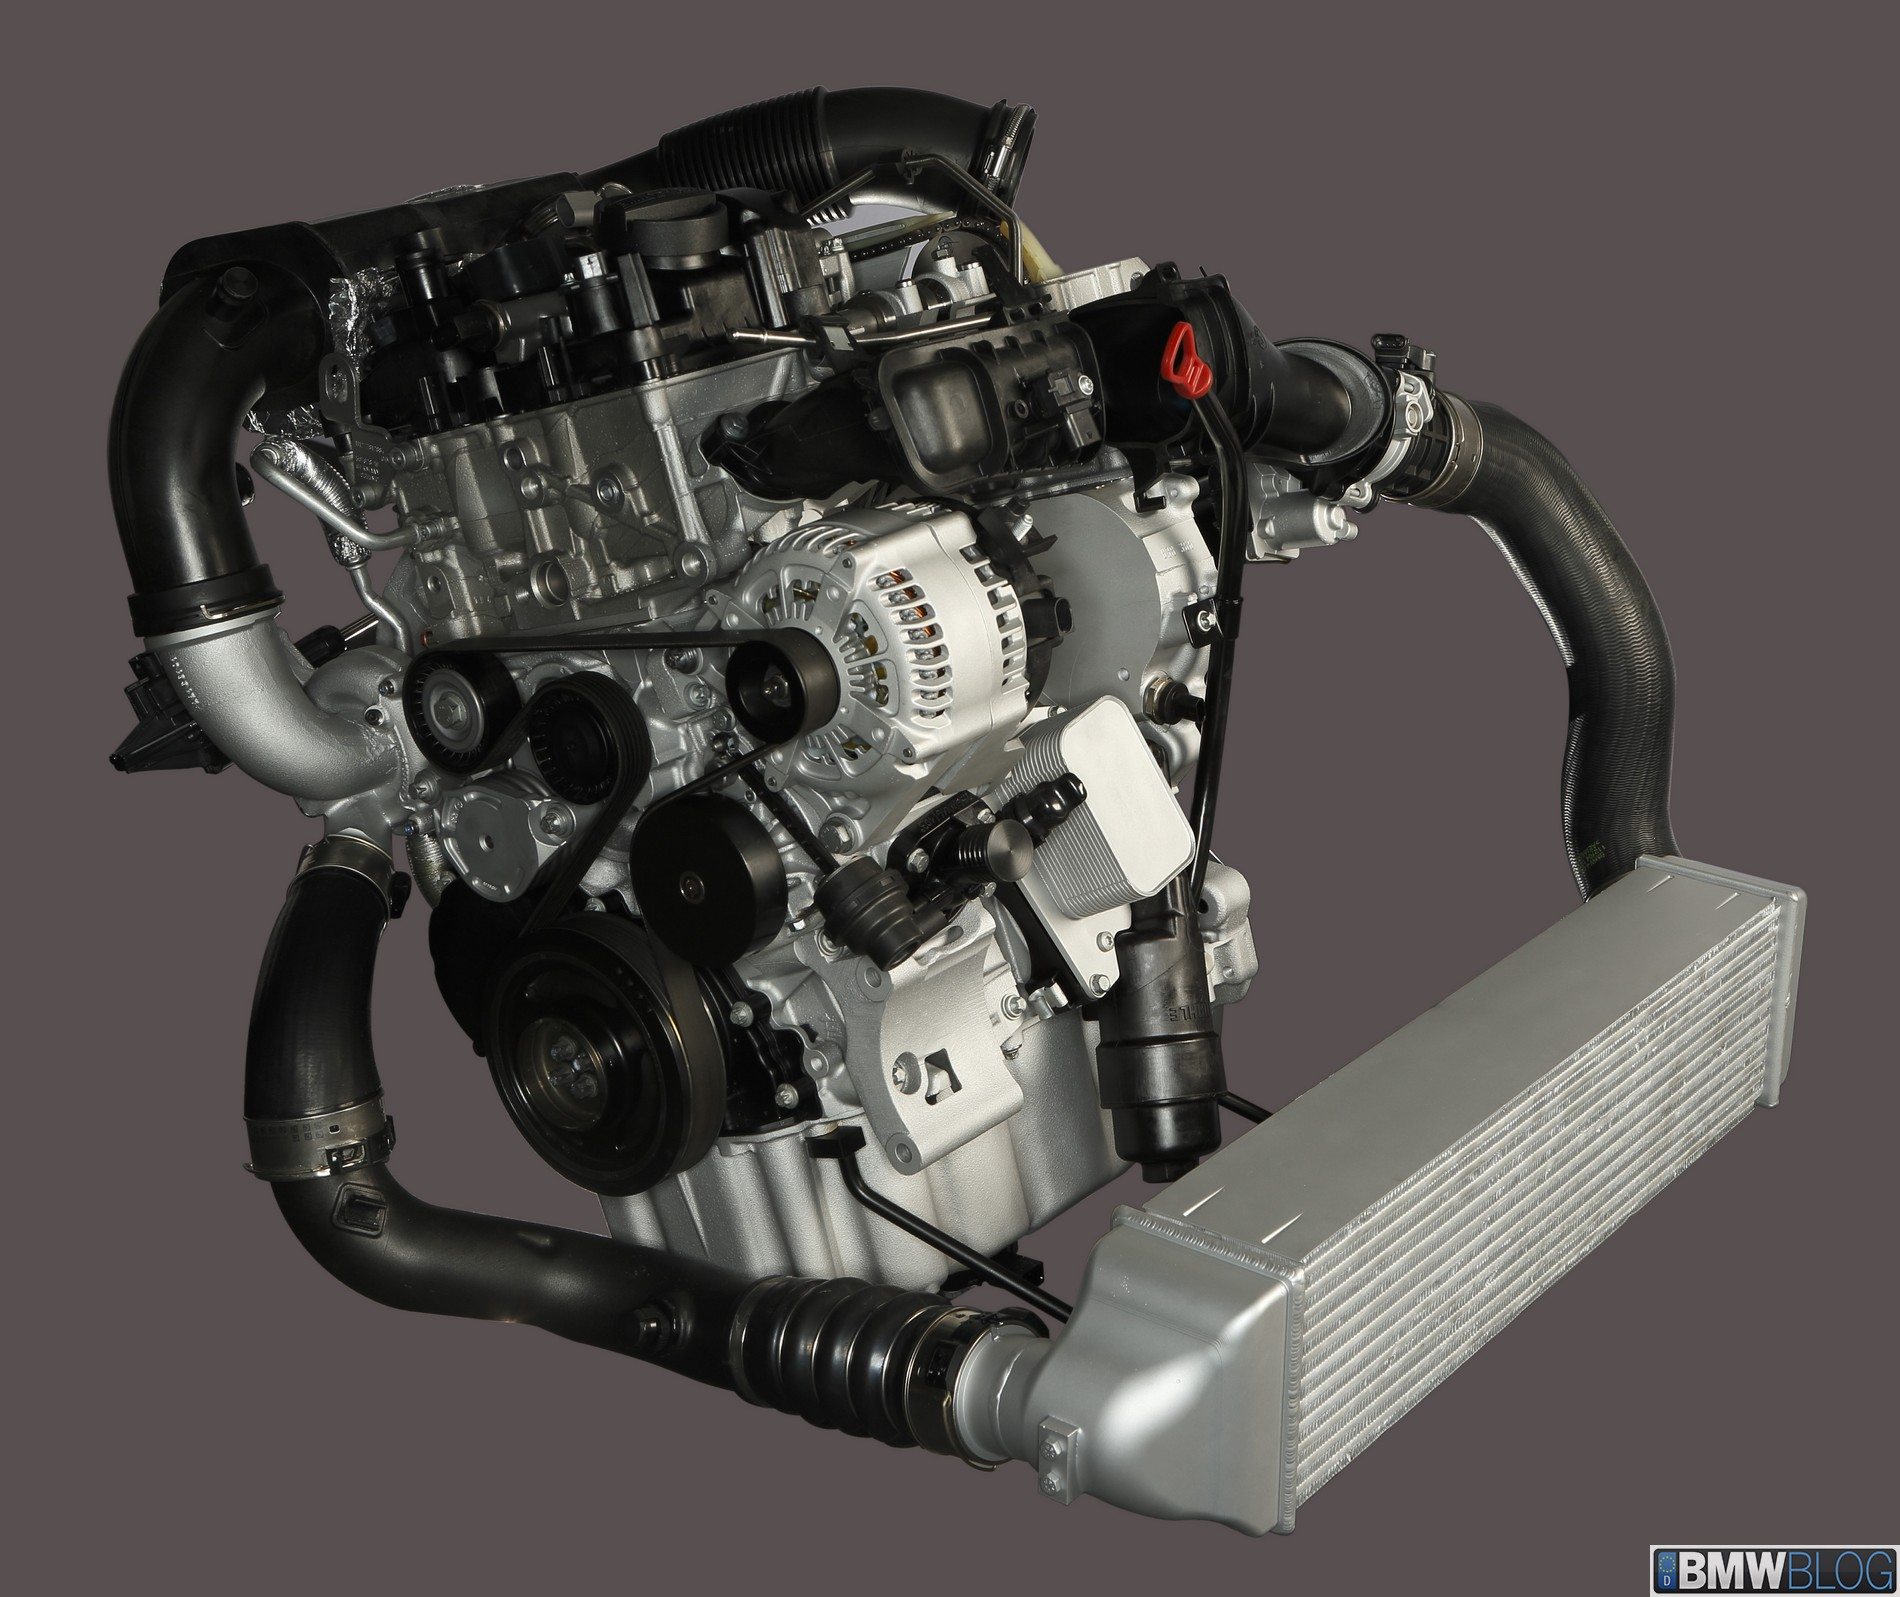 2015 Ward s 10 Best Engines BMW has two winners